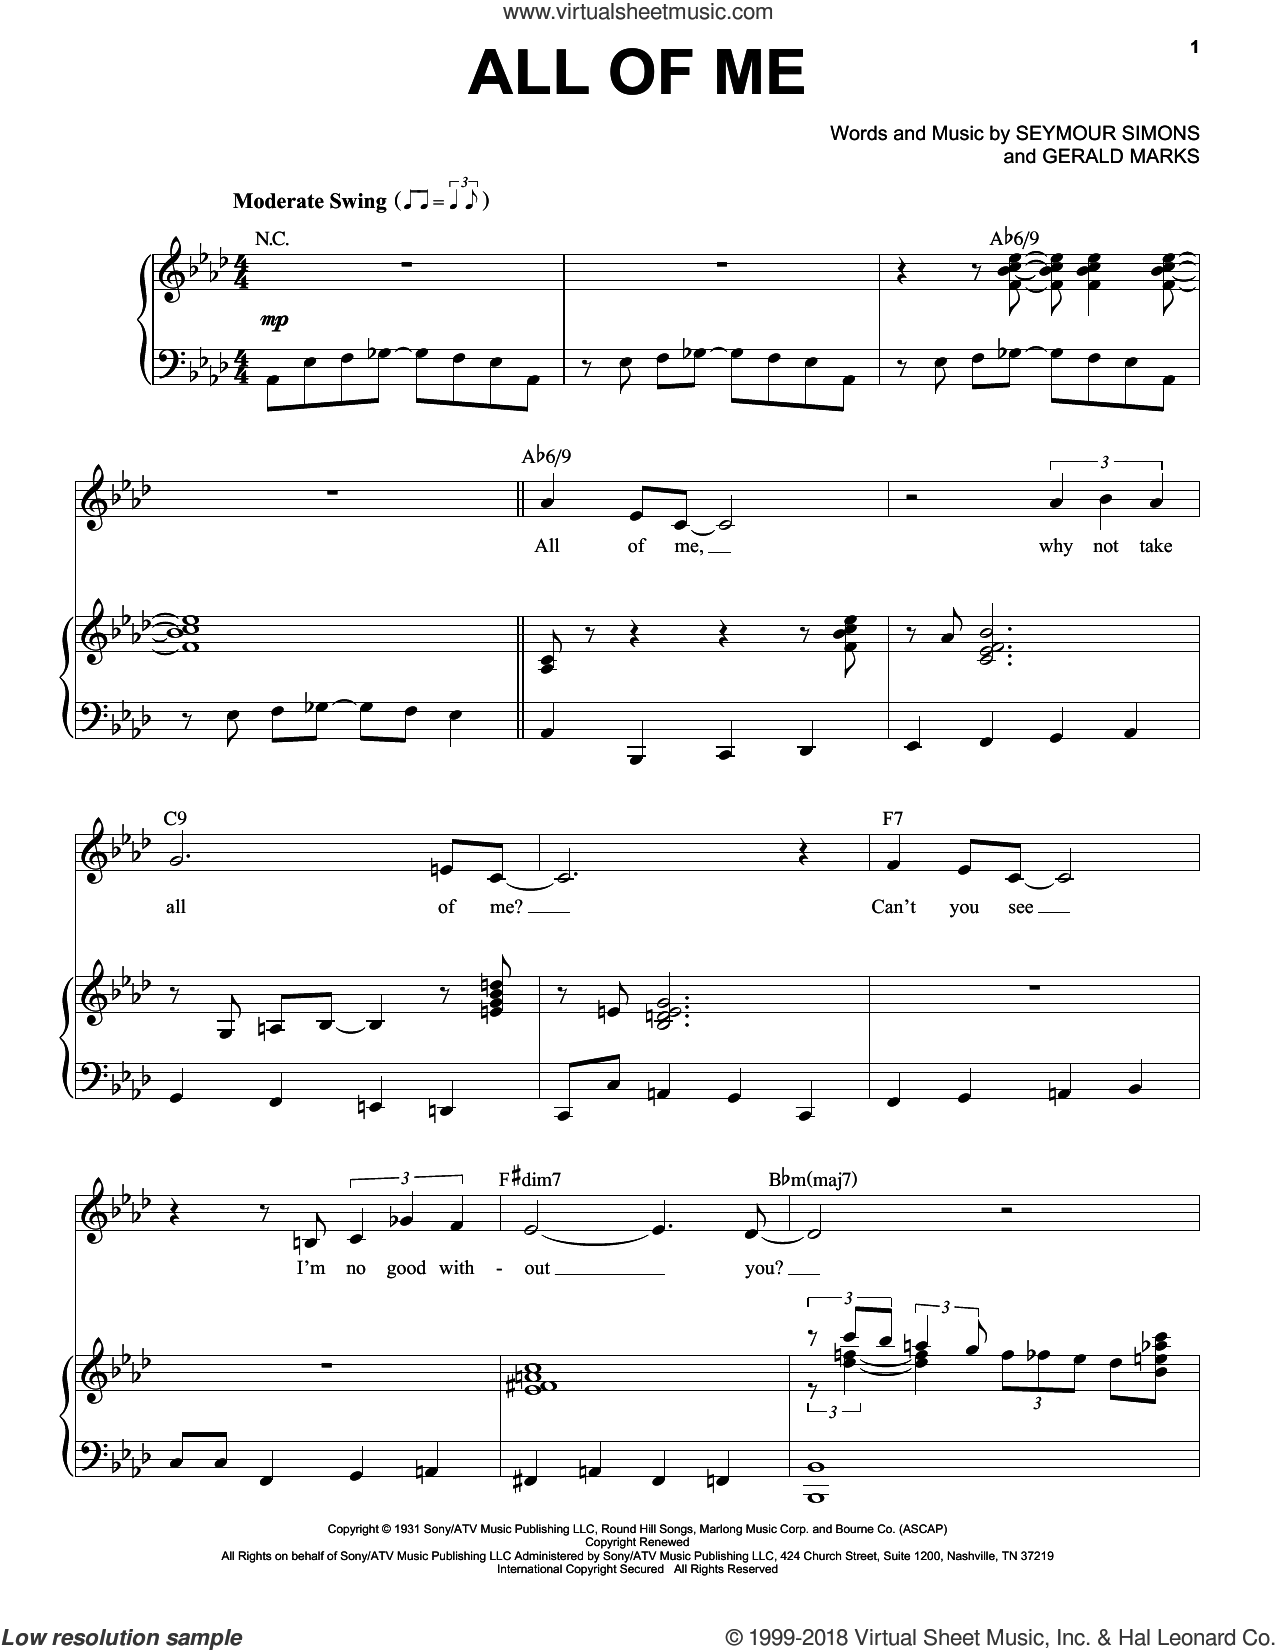 All Of Me sheet music for voice and piano by Seymour Simons